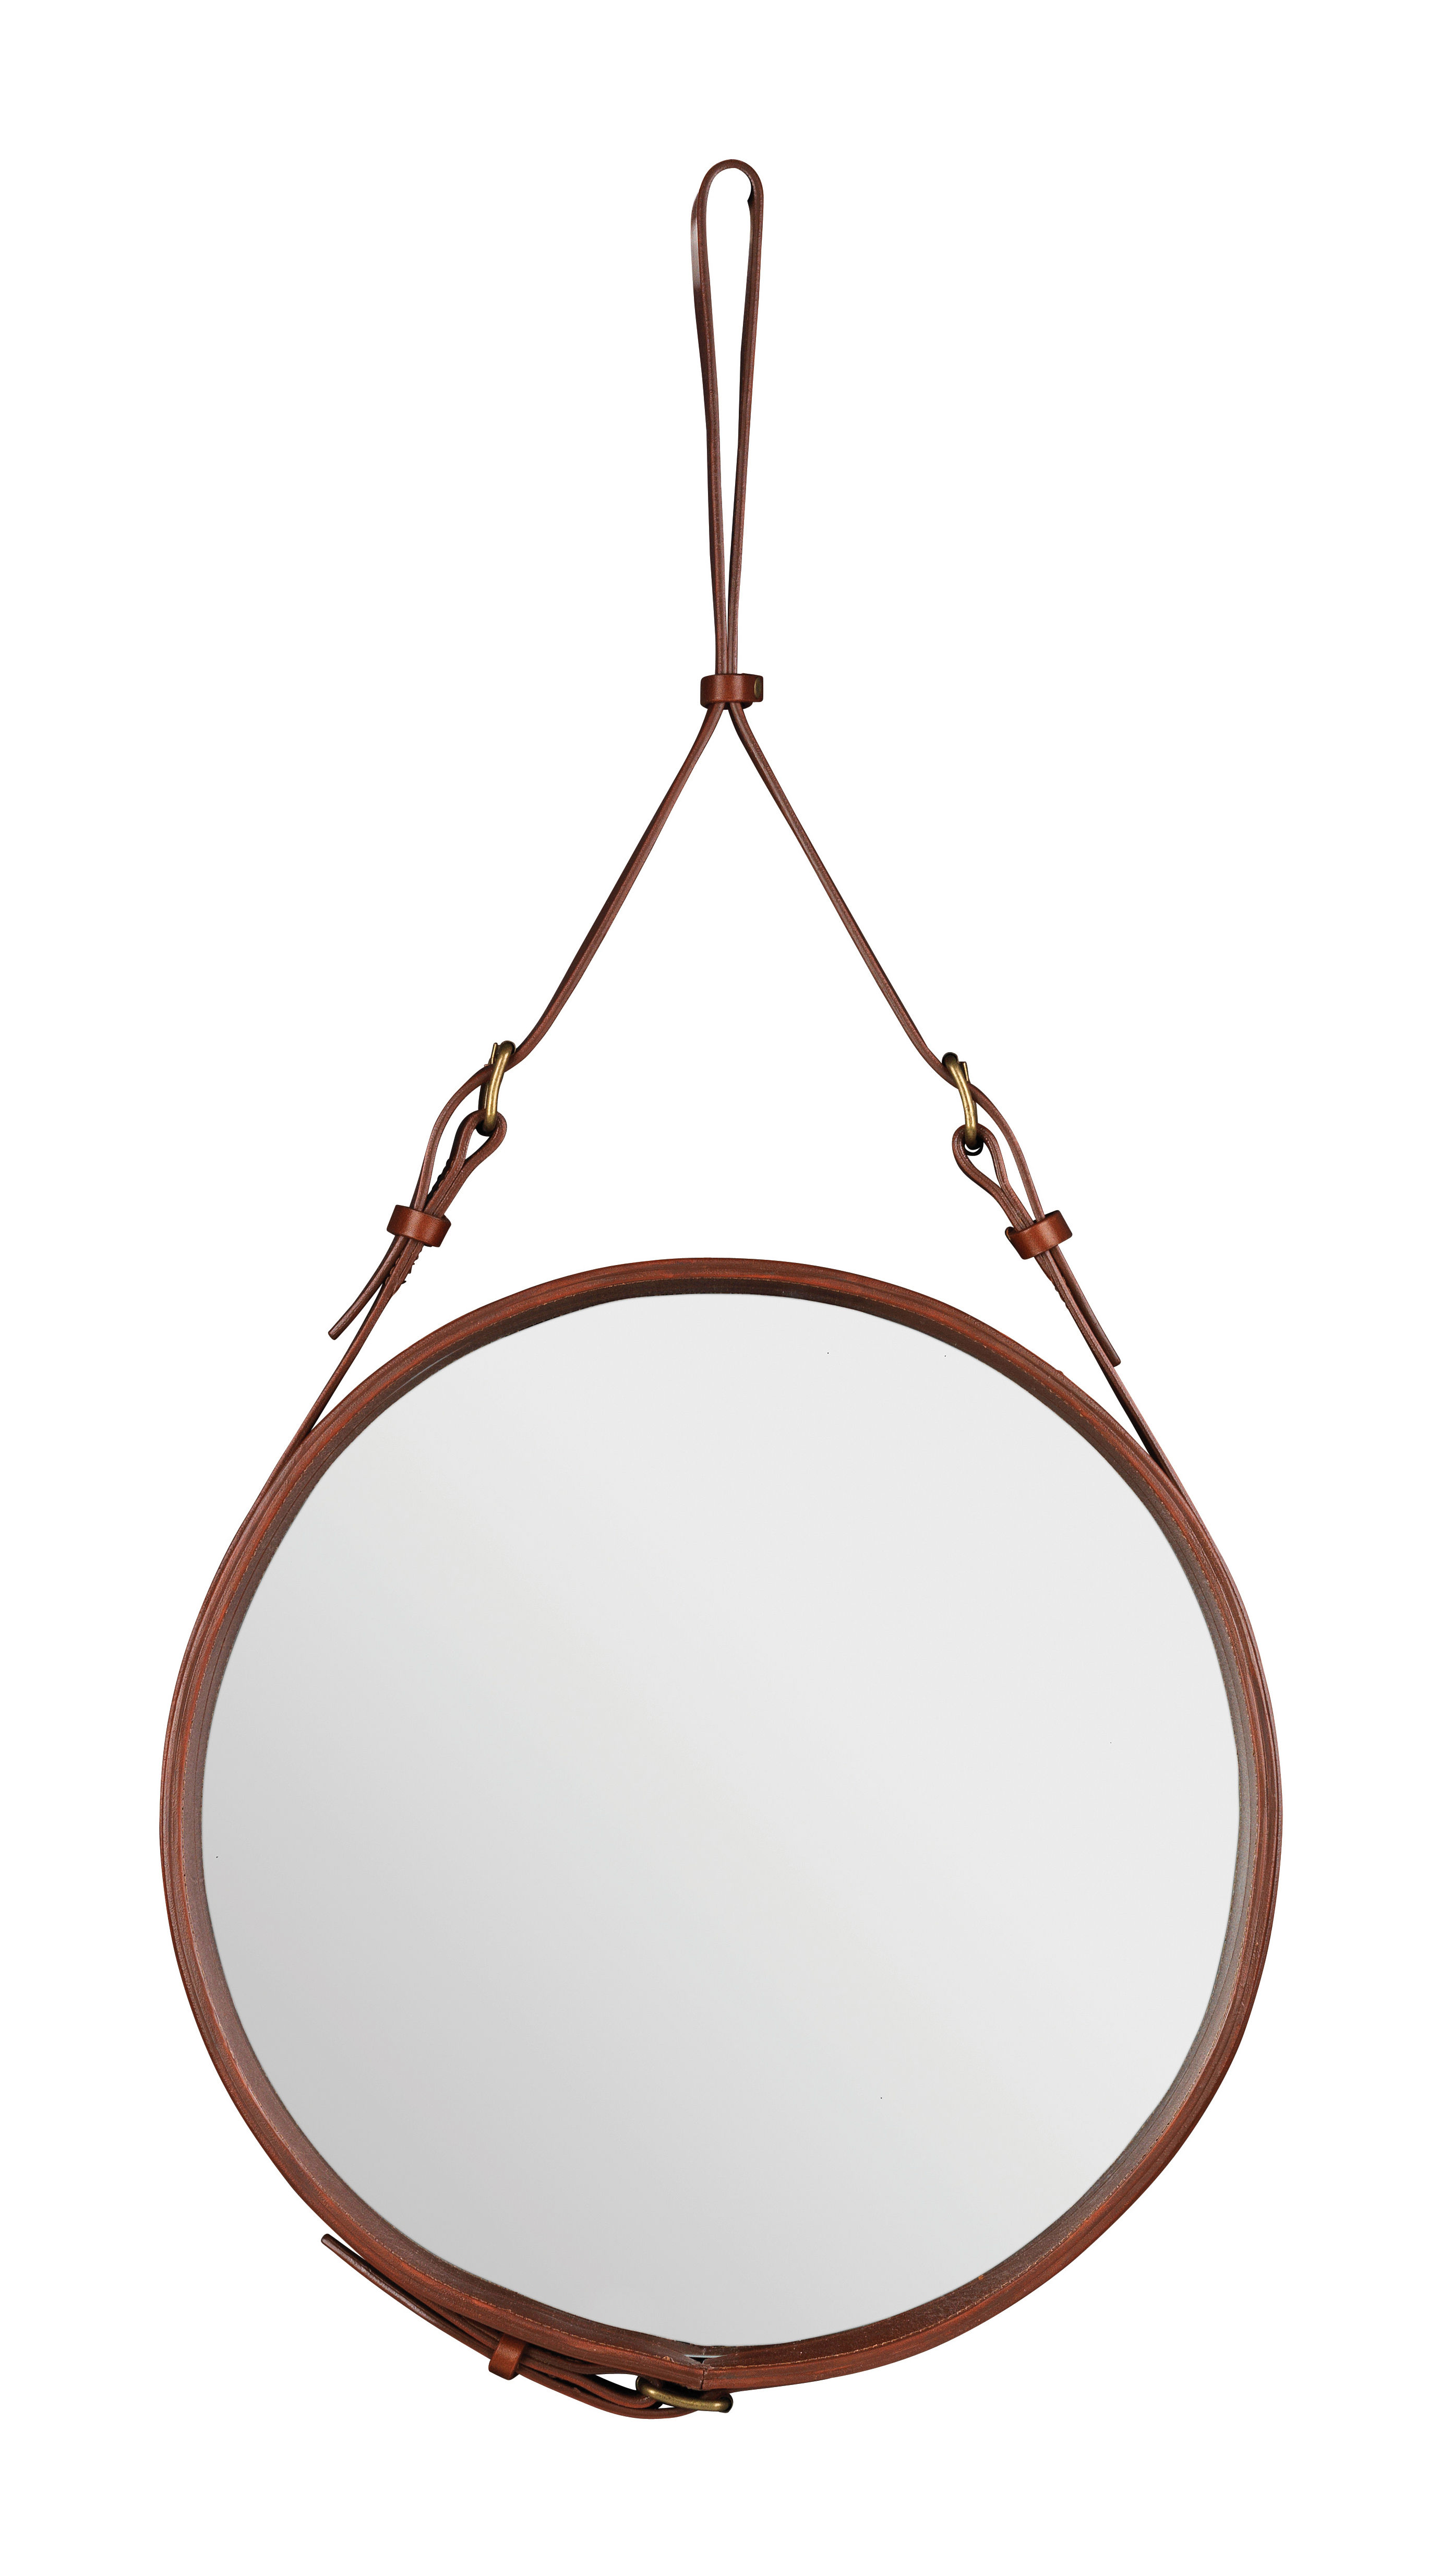 Furniture - Mirrors - Adnet Wall mirror - Ø 45 cm by Gubi - Brown - Leather